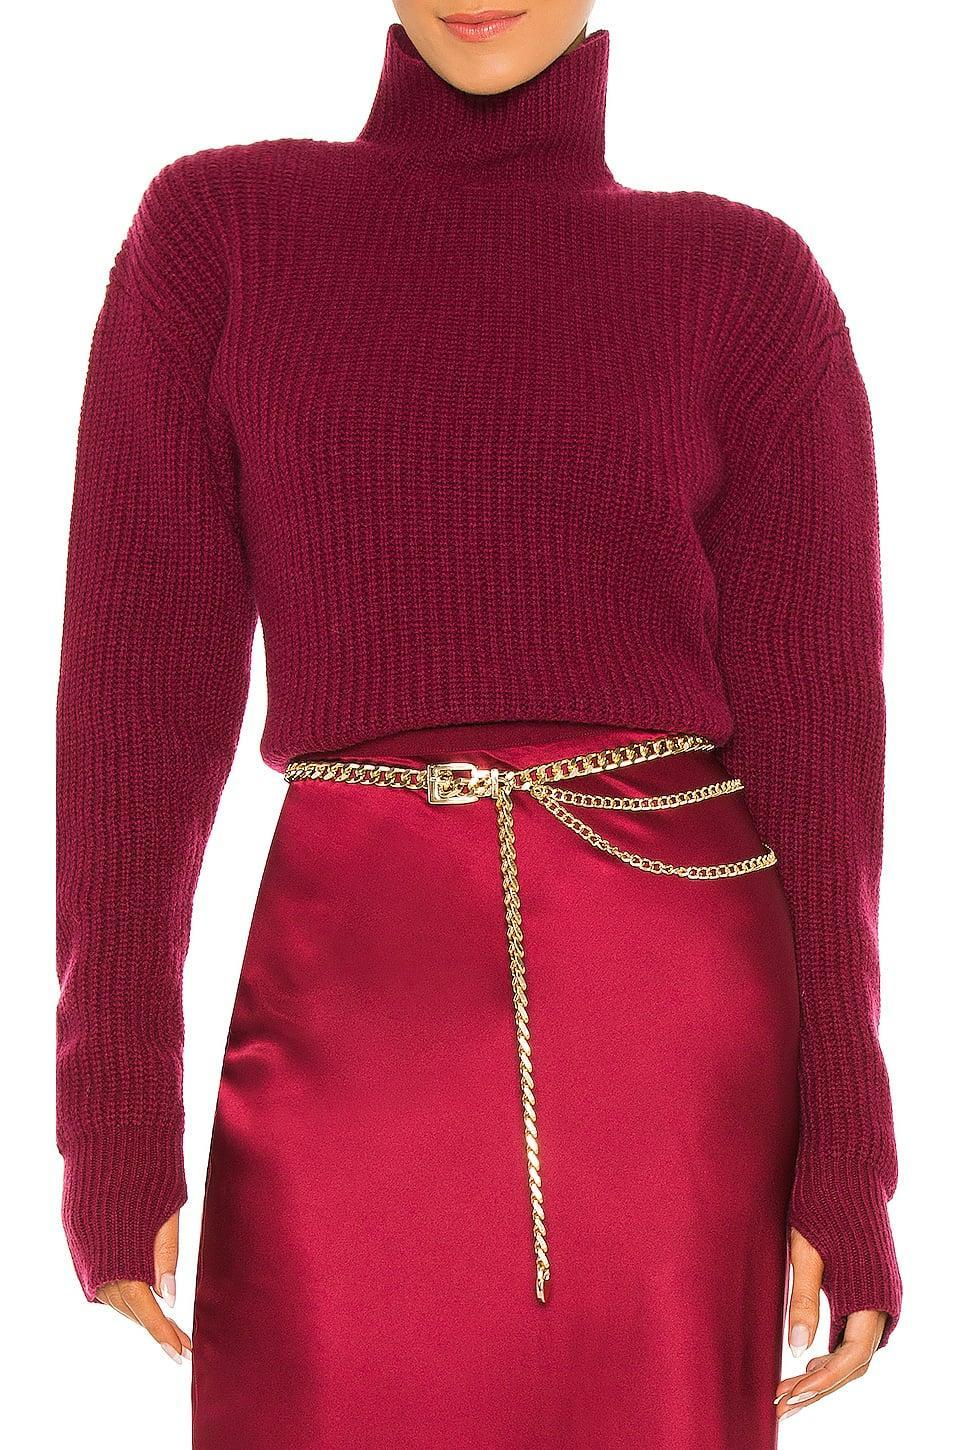 <p>This <span>8 Other Reasons Muse Belt</span> ($90) adds a luxe touch to any outfit.</p>